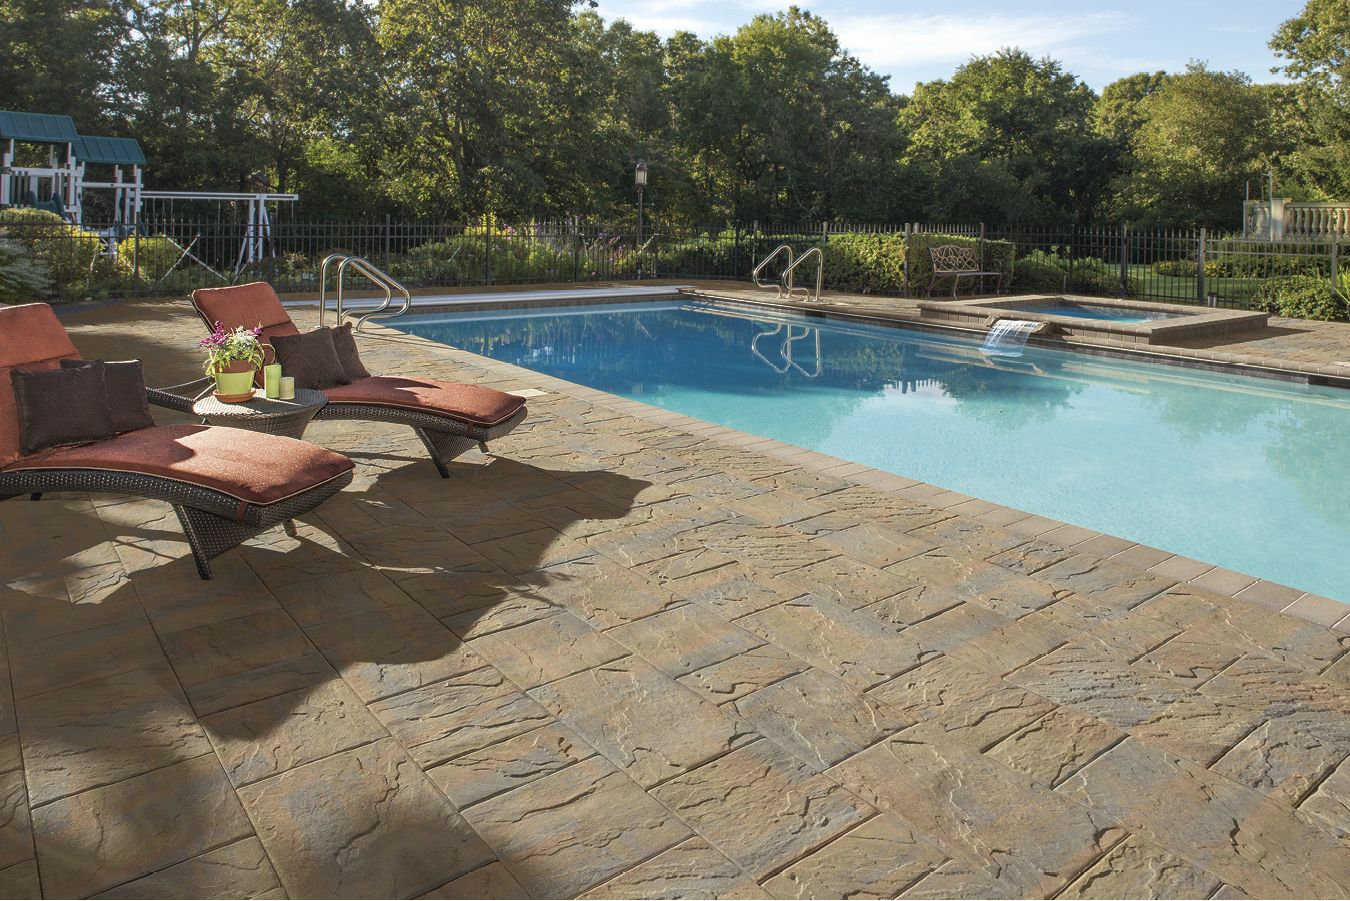 This patio was created using The Sherwood Collection